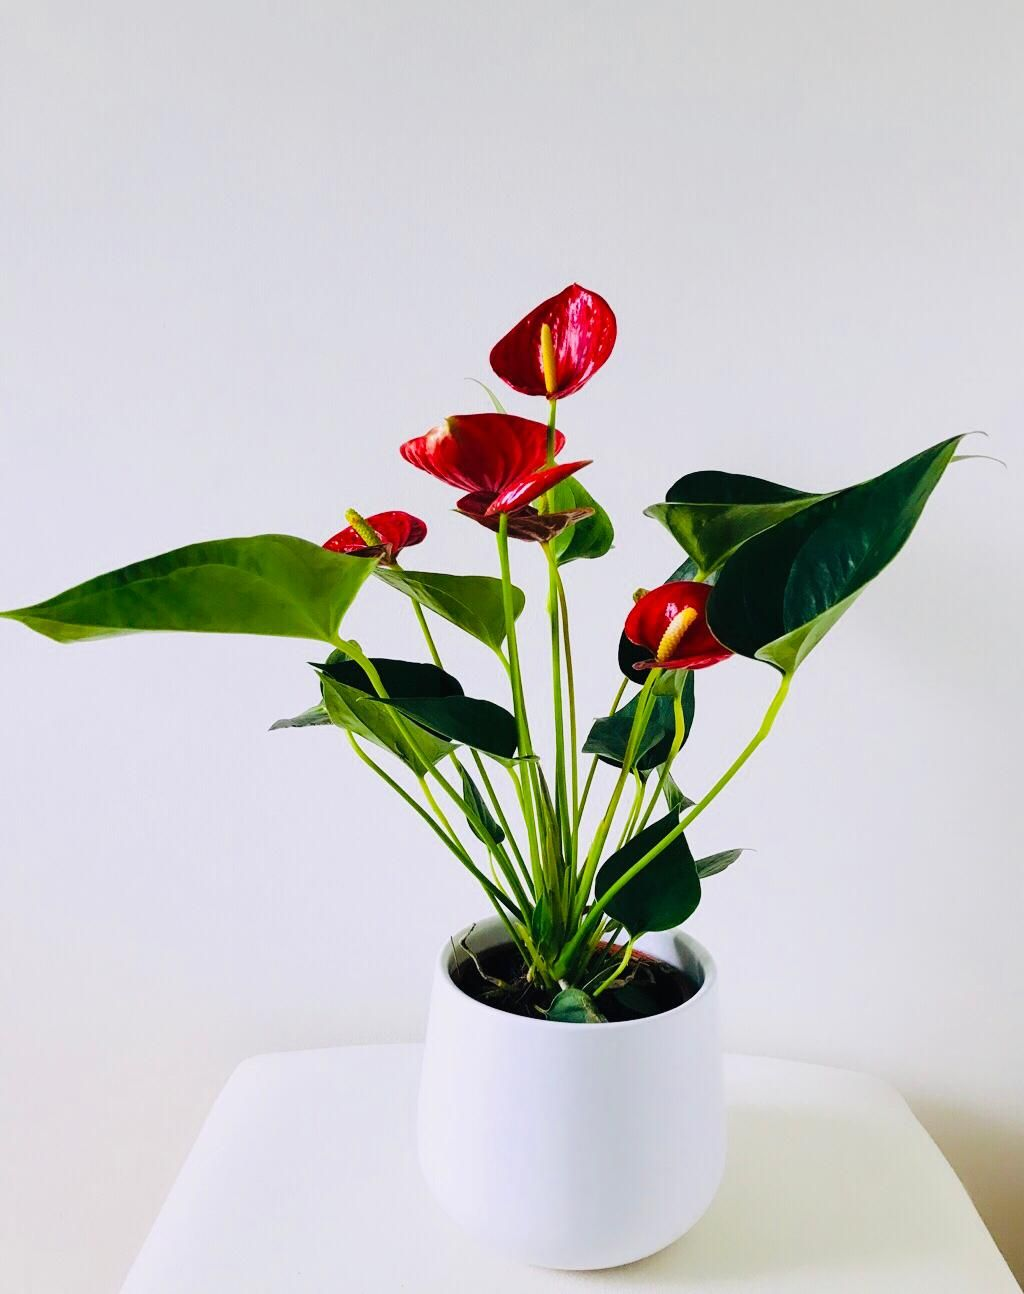 Anthurium Anthurium Anthurium Plant Plants That Repel Bugs